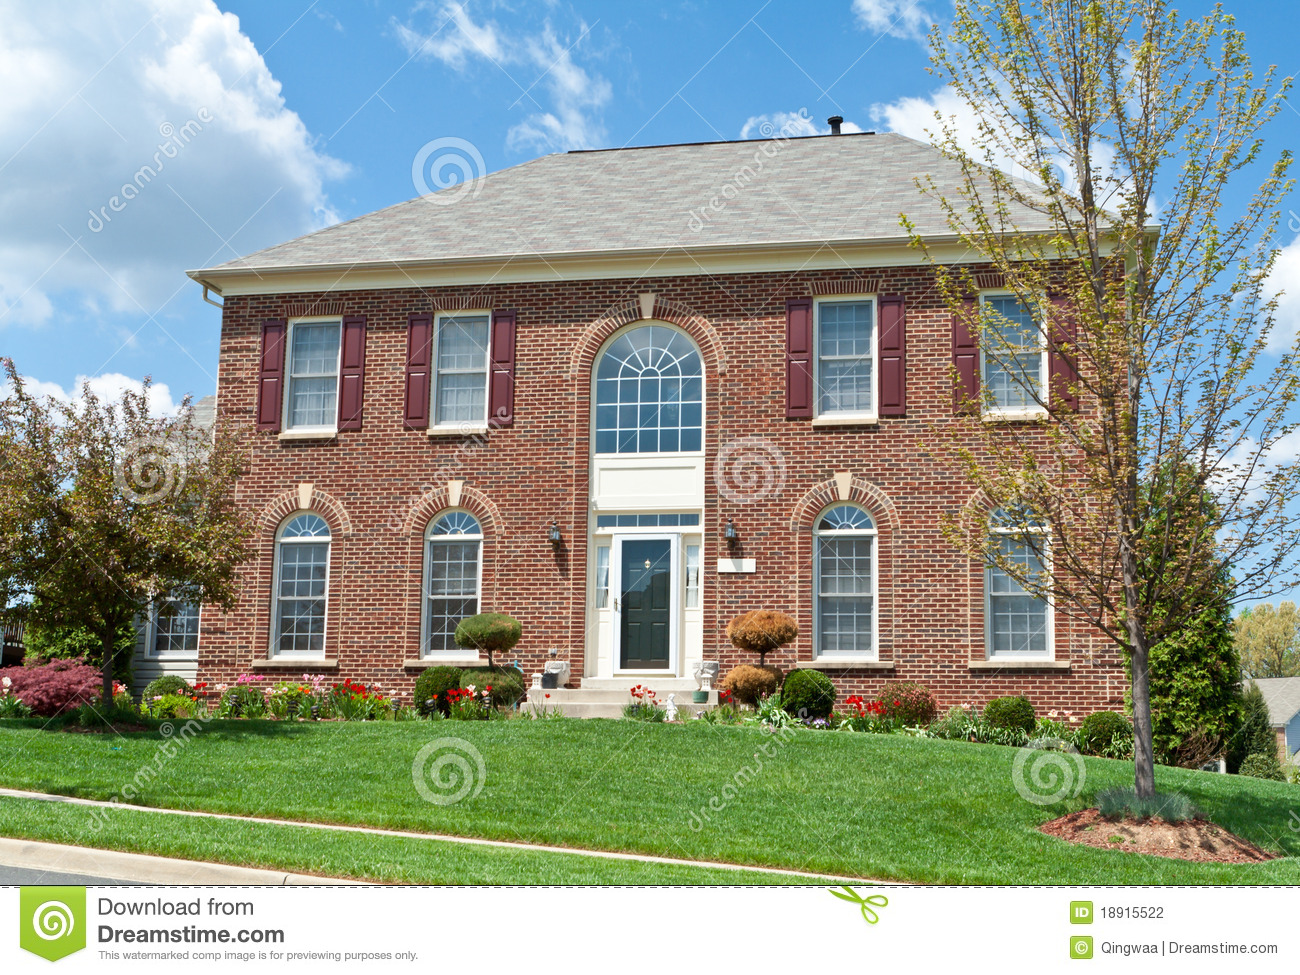 Center Hall Colonial House Plans Colonial Brick Single Family House Home Md Usa Stock